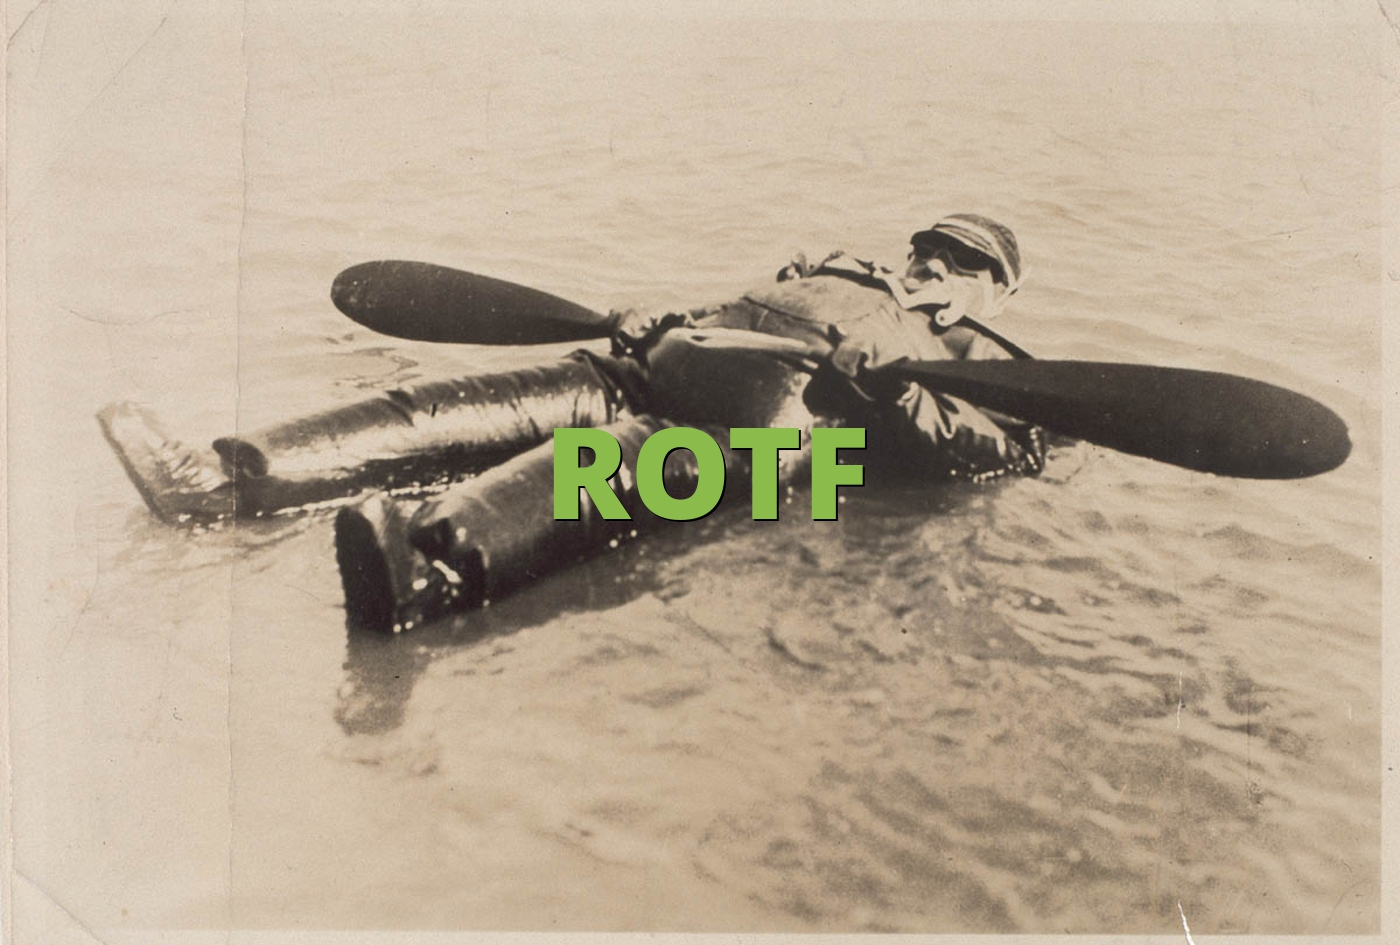 What does rotf mean in texting